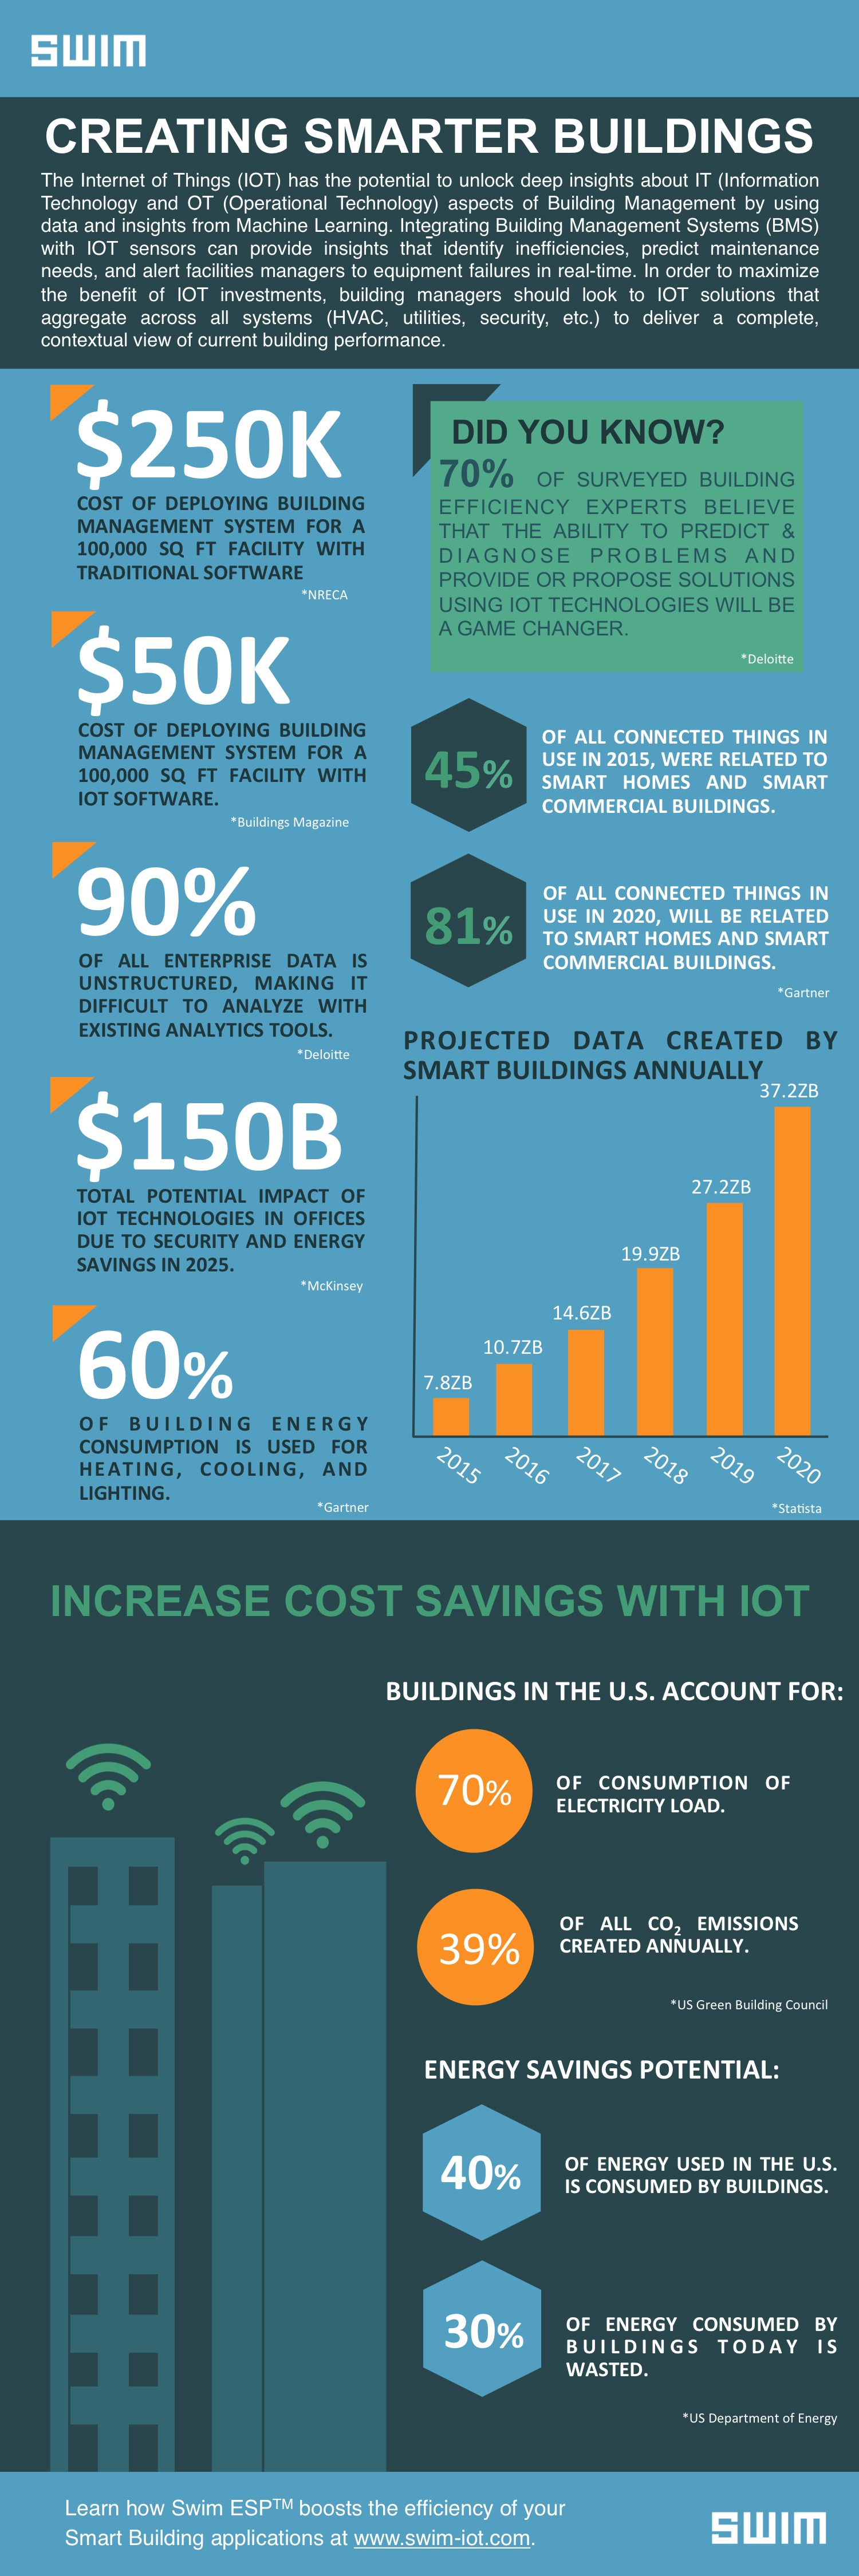 Increase Cost Savings with Smarter Buildings for Smart Cities - IOT Infographic | Swim Inc.